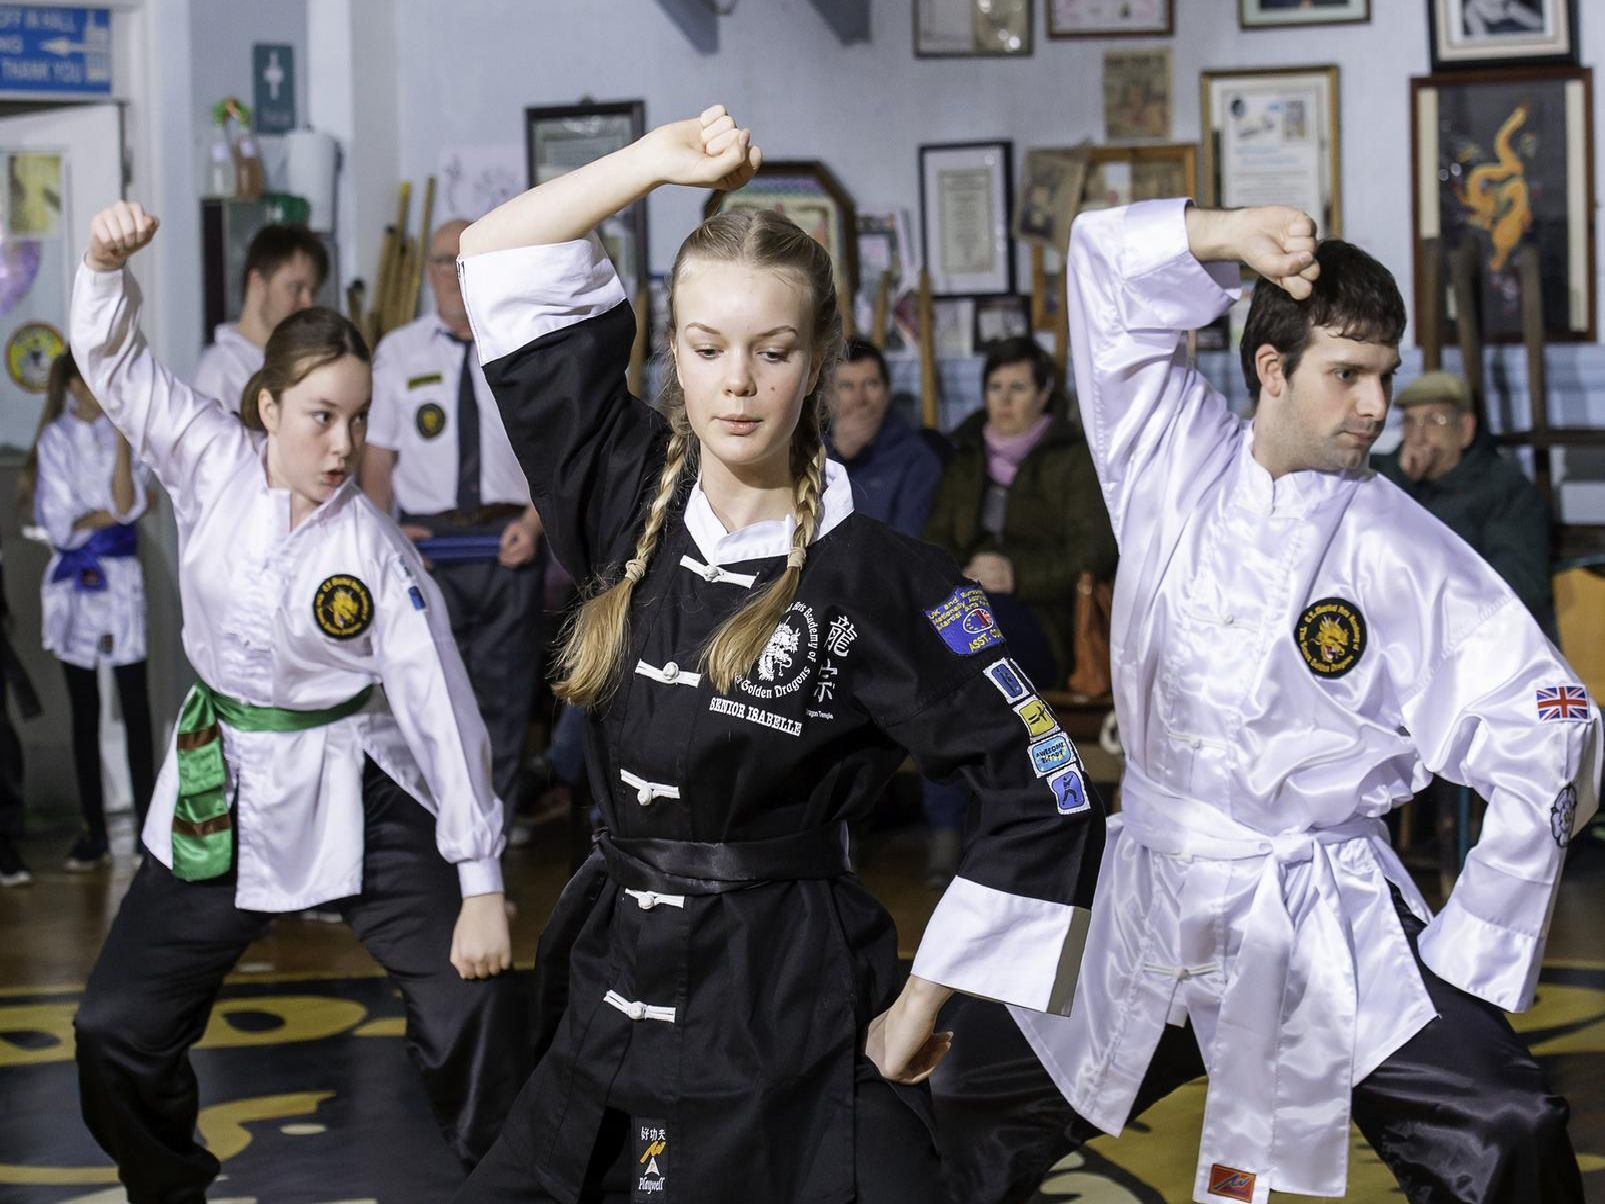 Displays were put on at Eamon Timmons' Martial Arts Academy.